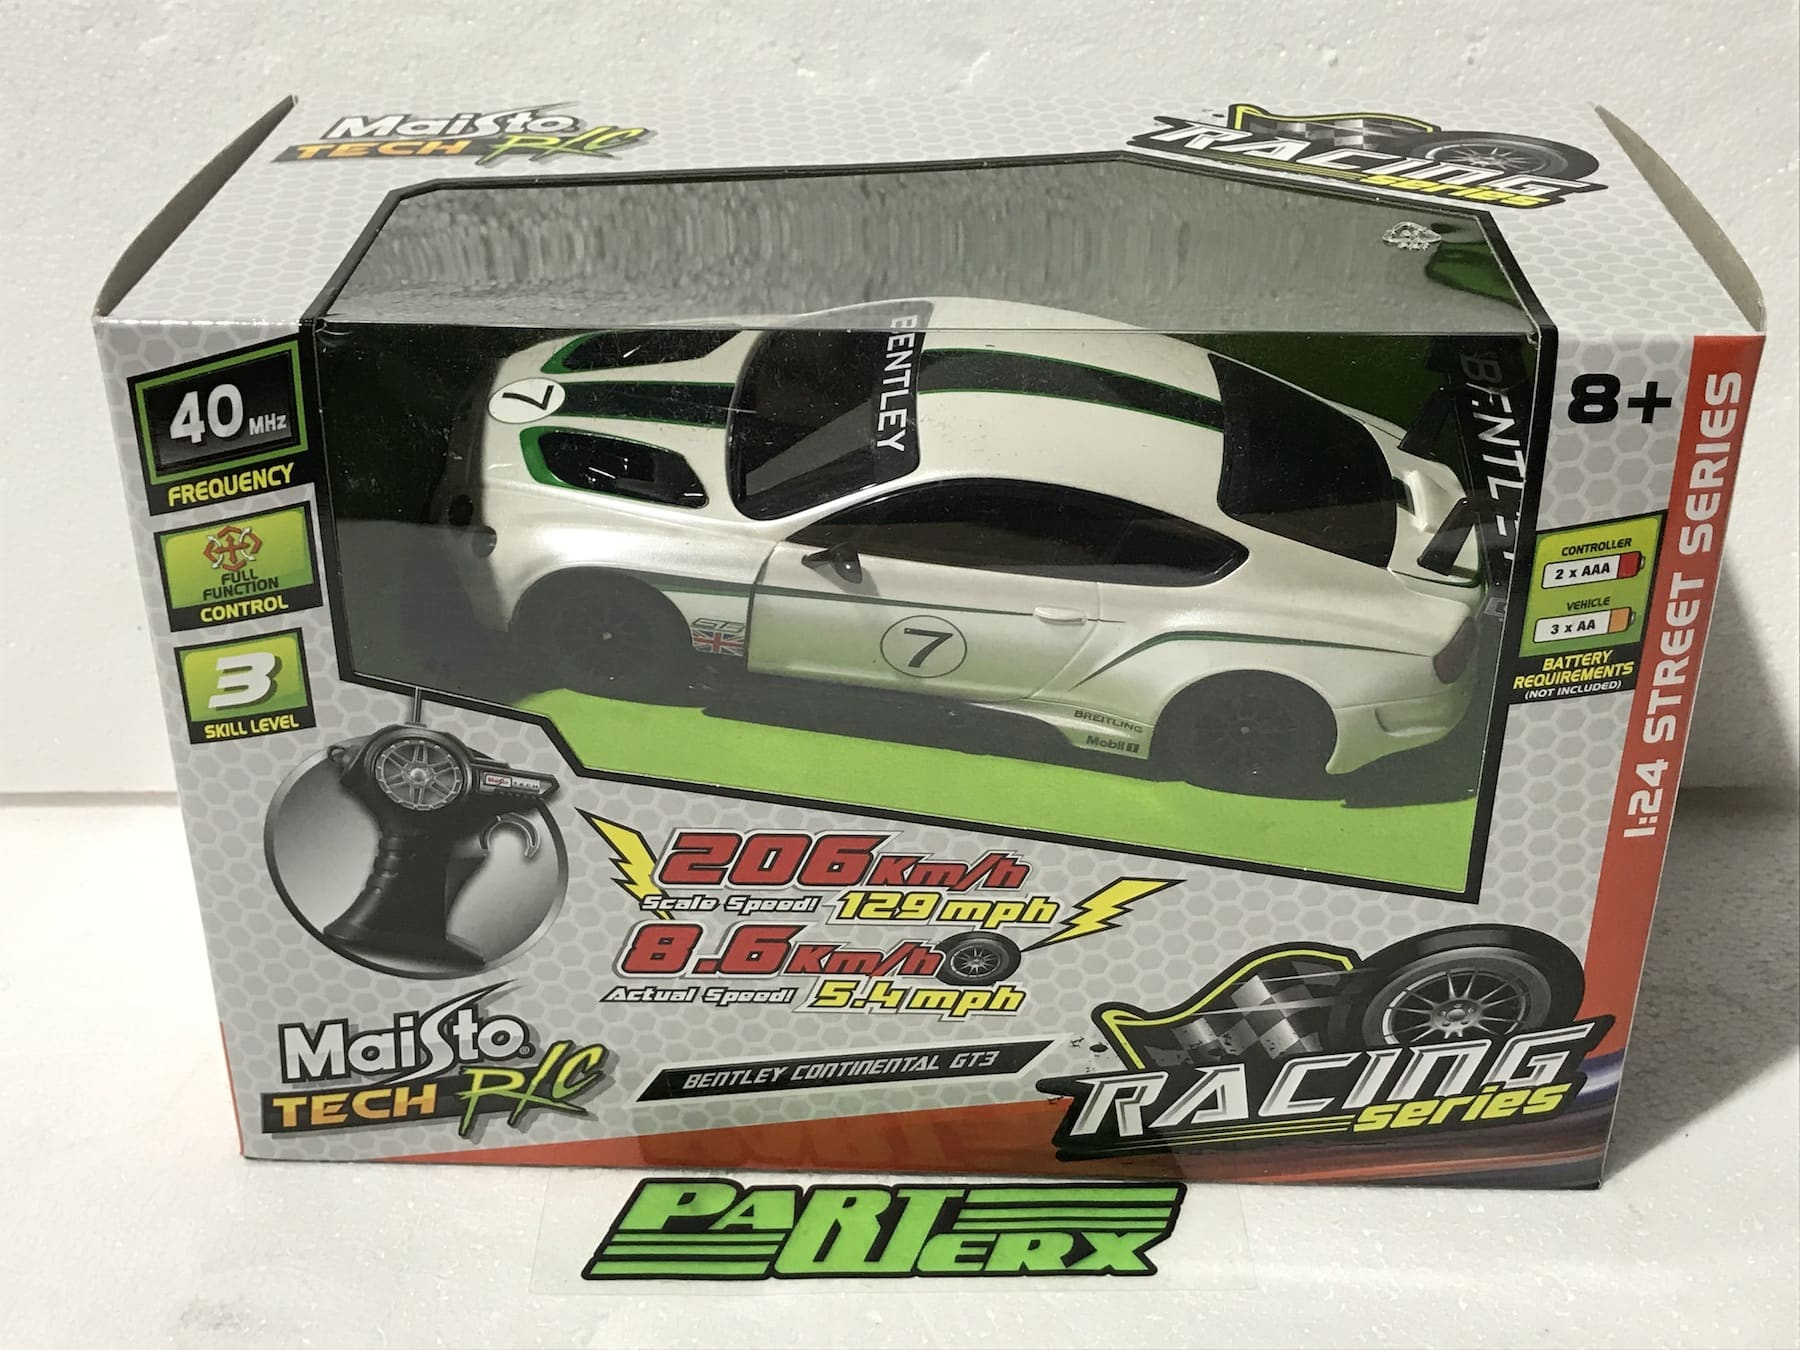 Bentley Continental GT3 3 1:24 RC Radio Controlled Scale Model Car Kids Dads Gift Birthday Present